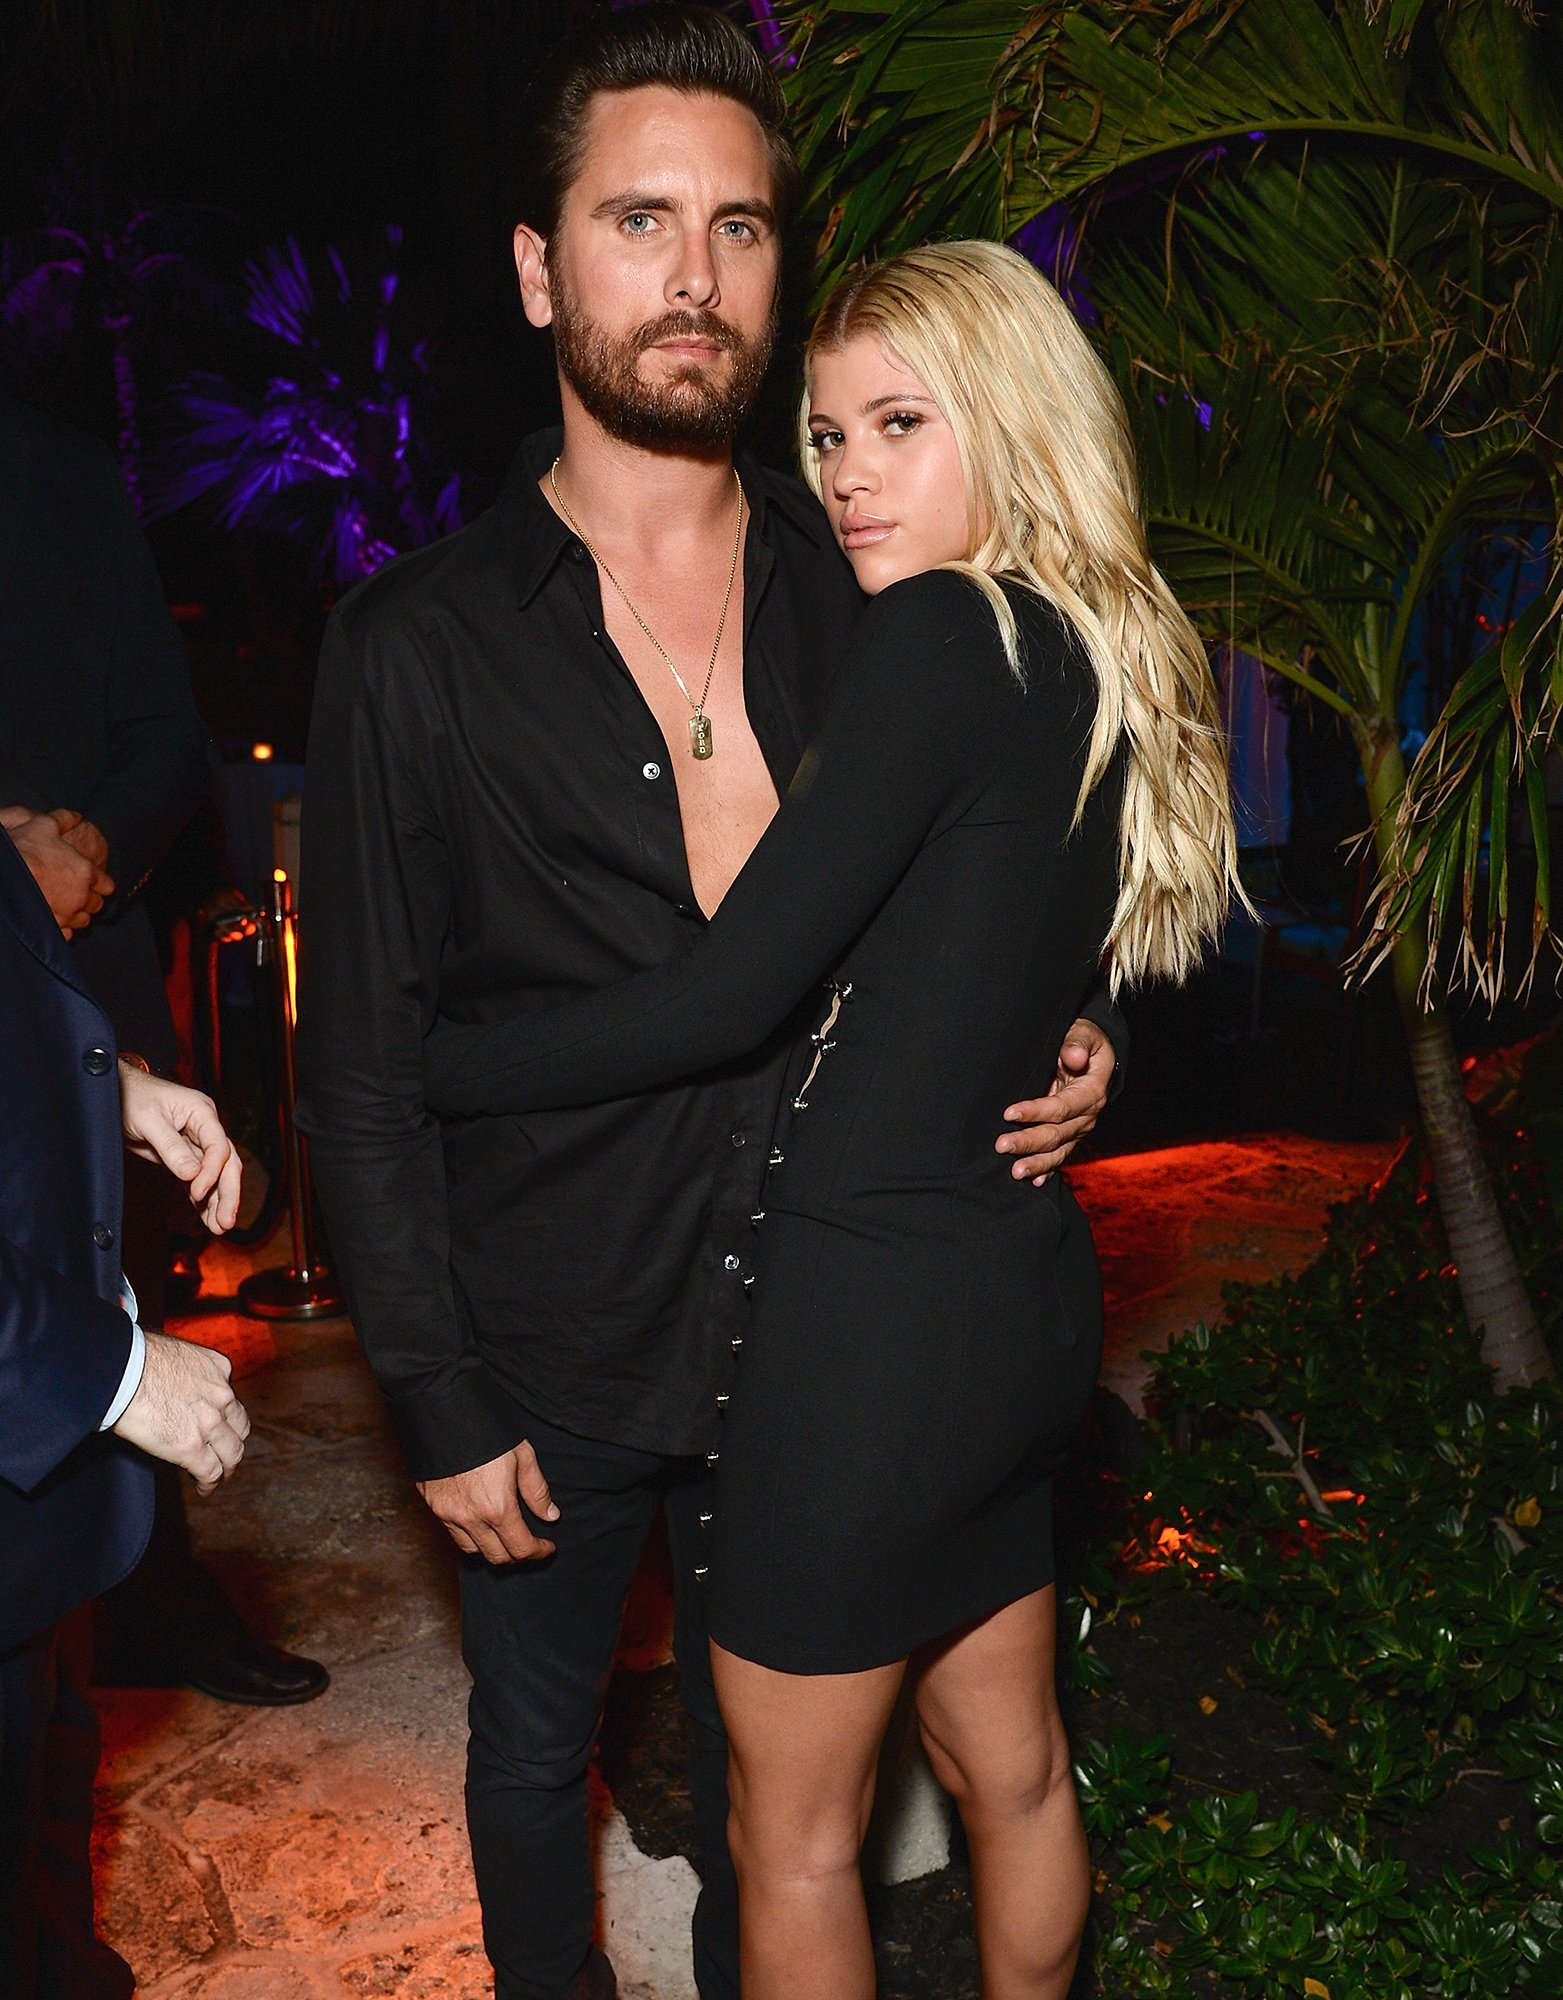 Sofia Richie Says She and Scott Disick are 'Very Happy'